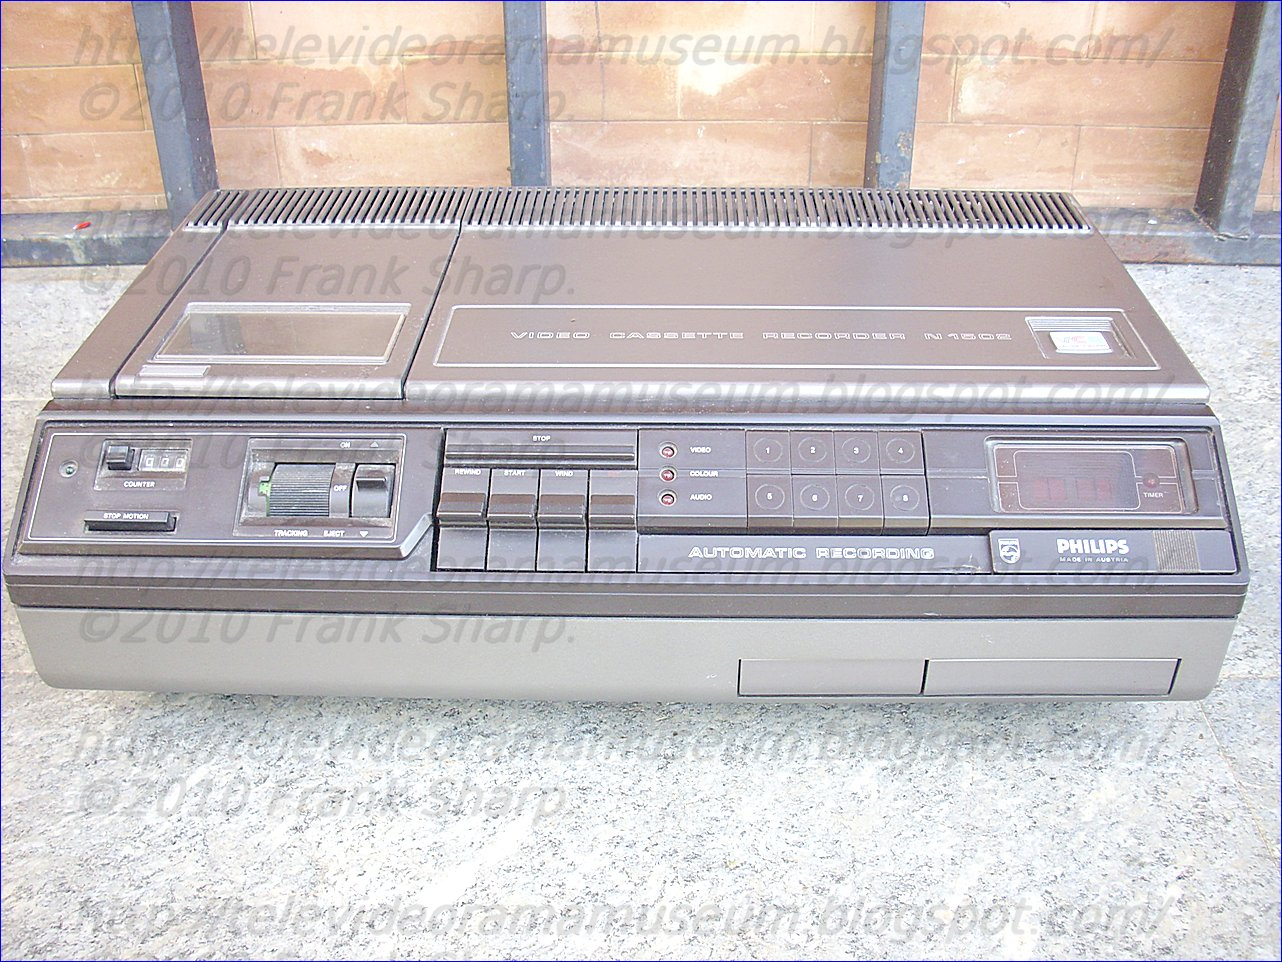 Tele Video Rama Museum !: PHILIPS VIDEO CASSETTE RECORDER VCR N1502 ...